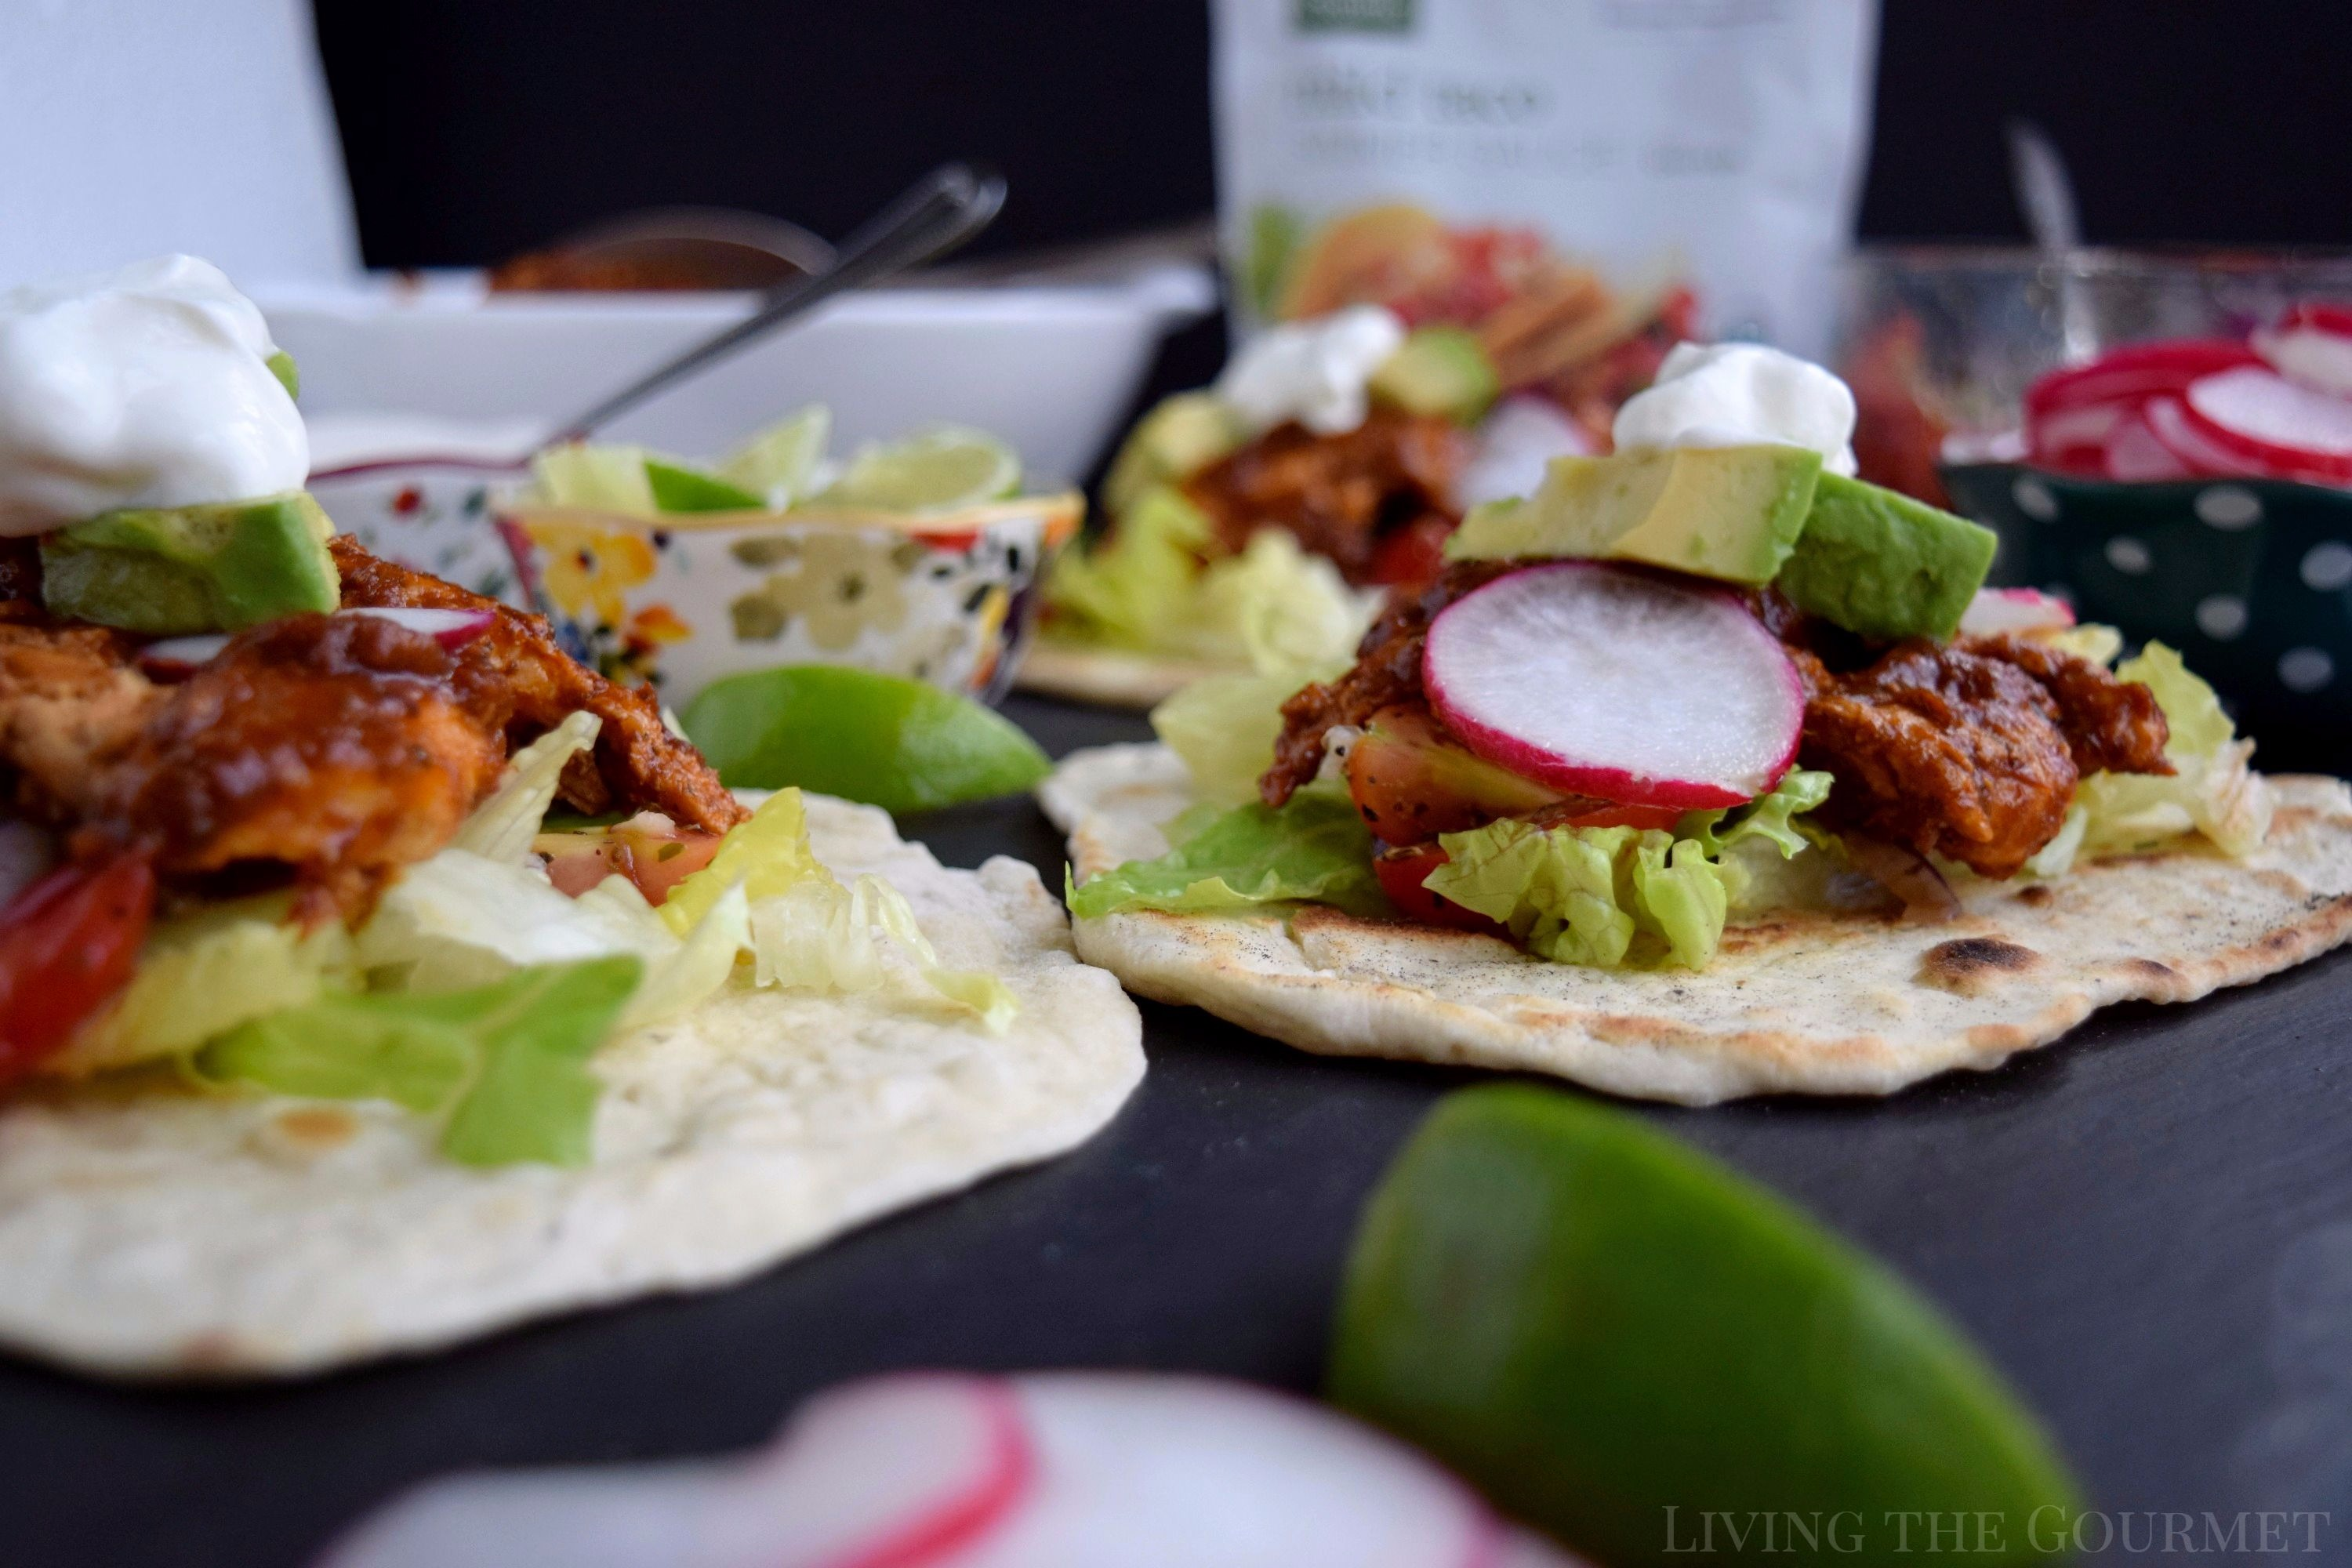 Living the Gourmet: Give your typical tacos a refresh with warm flatbreads, a fresh tomato salad and Smiply Organic Mild Taco Simmer Sauce - a chef-worthy, richly seasoned sauce made with organic ingredients! #ad